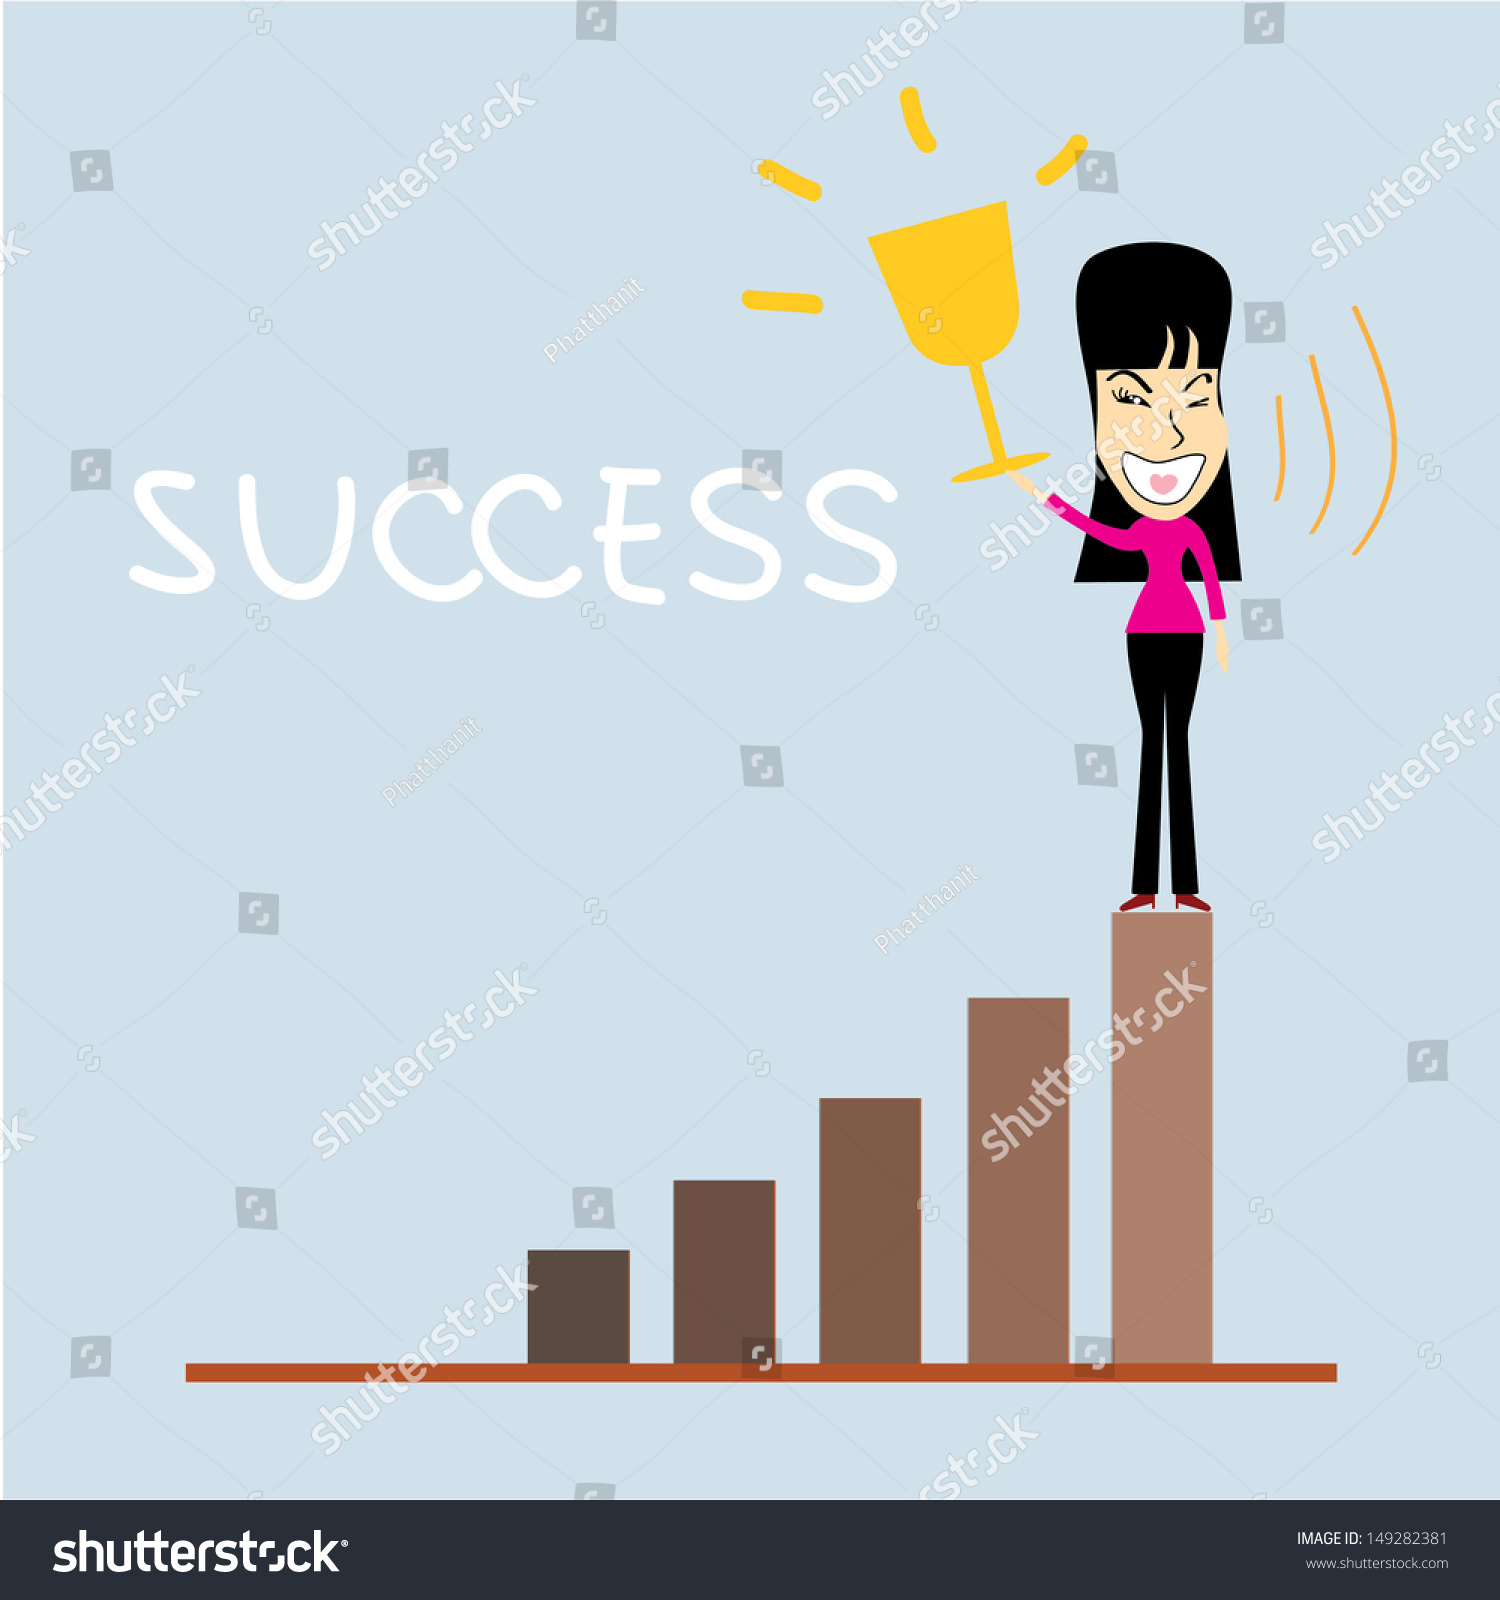 Get Success Cartoon Images